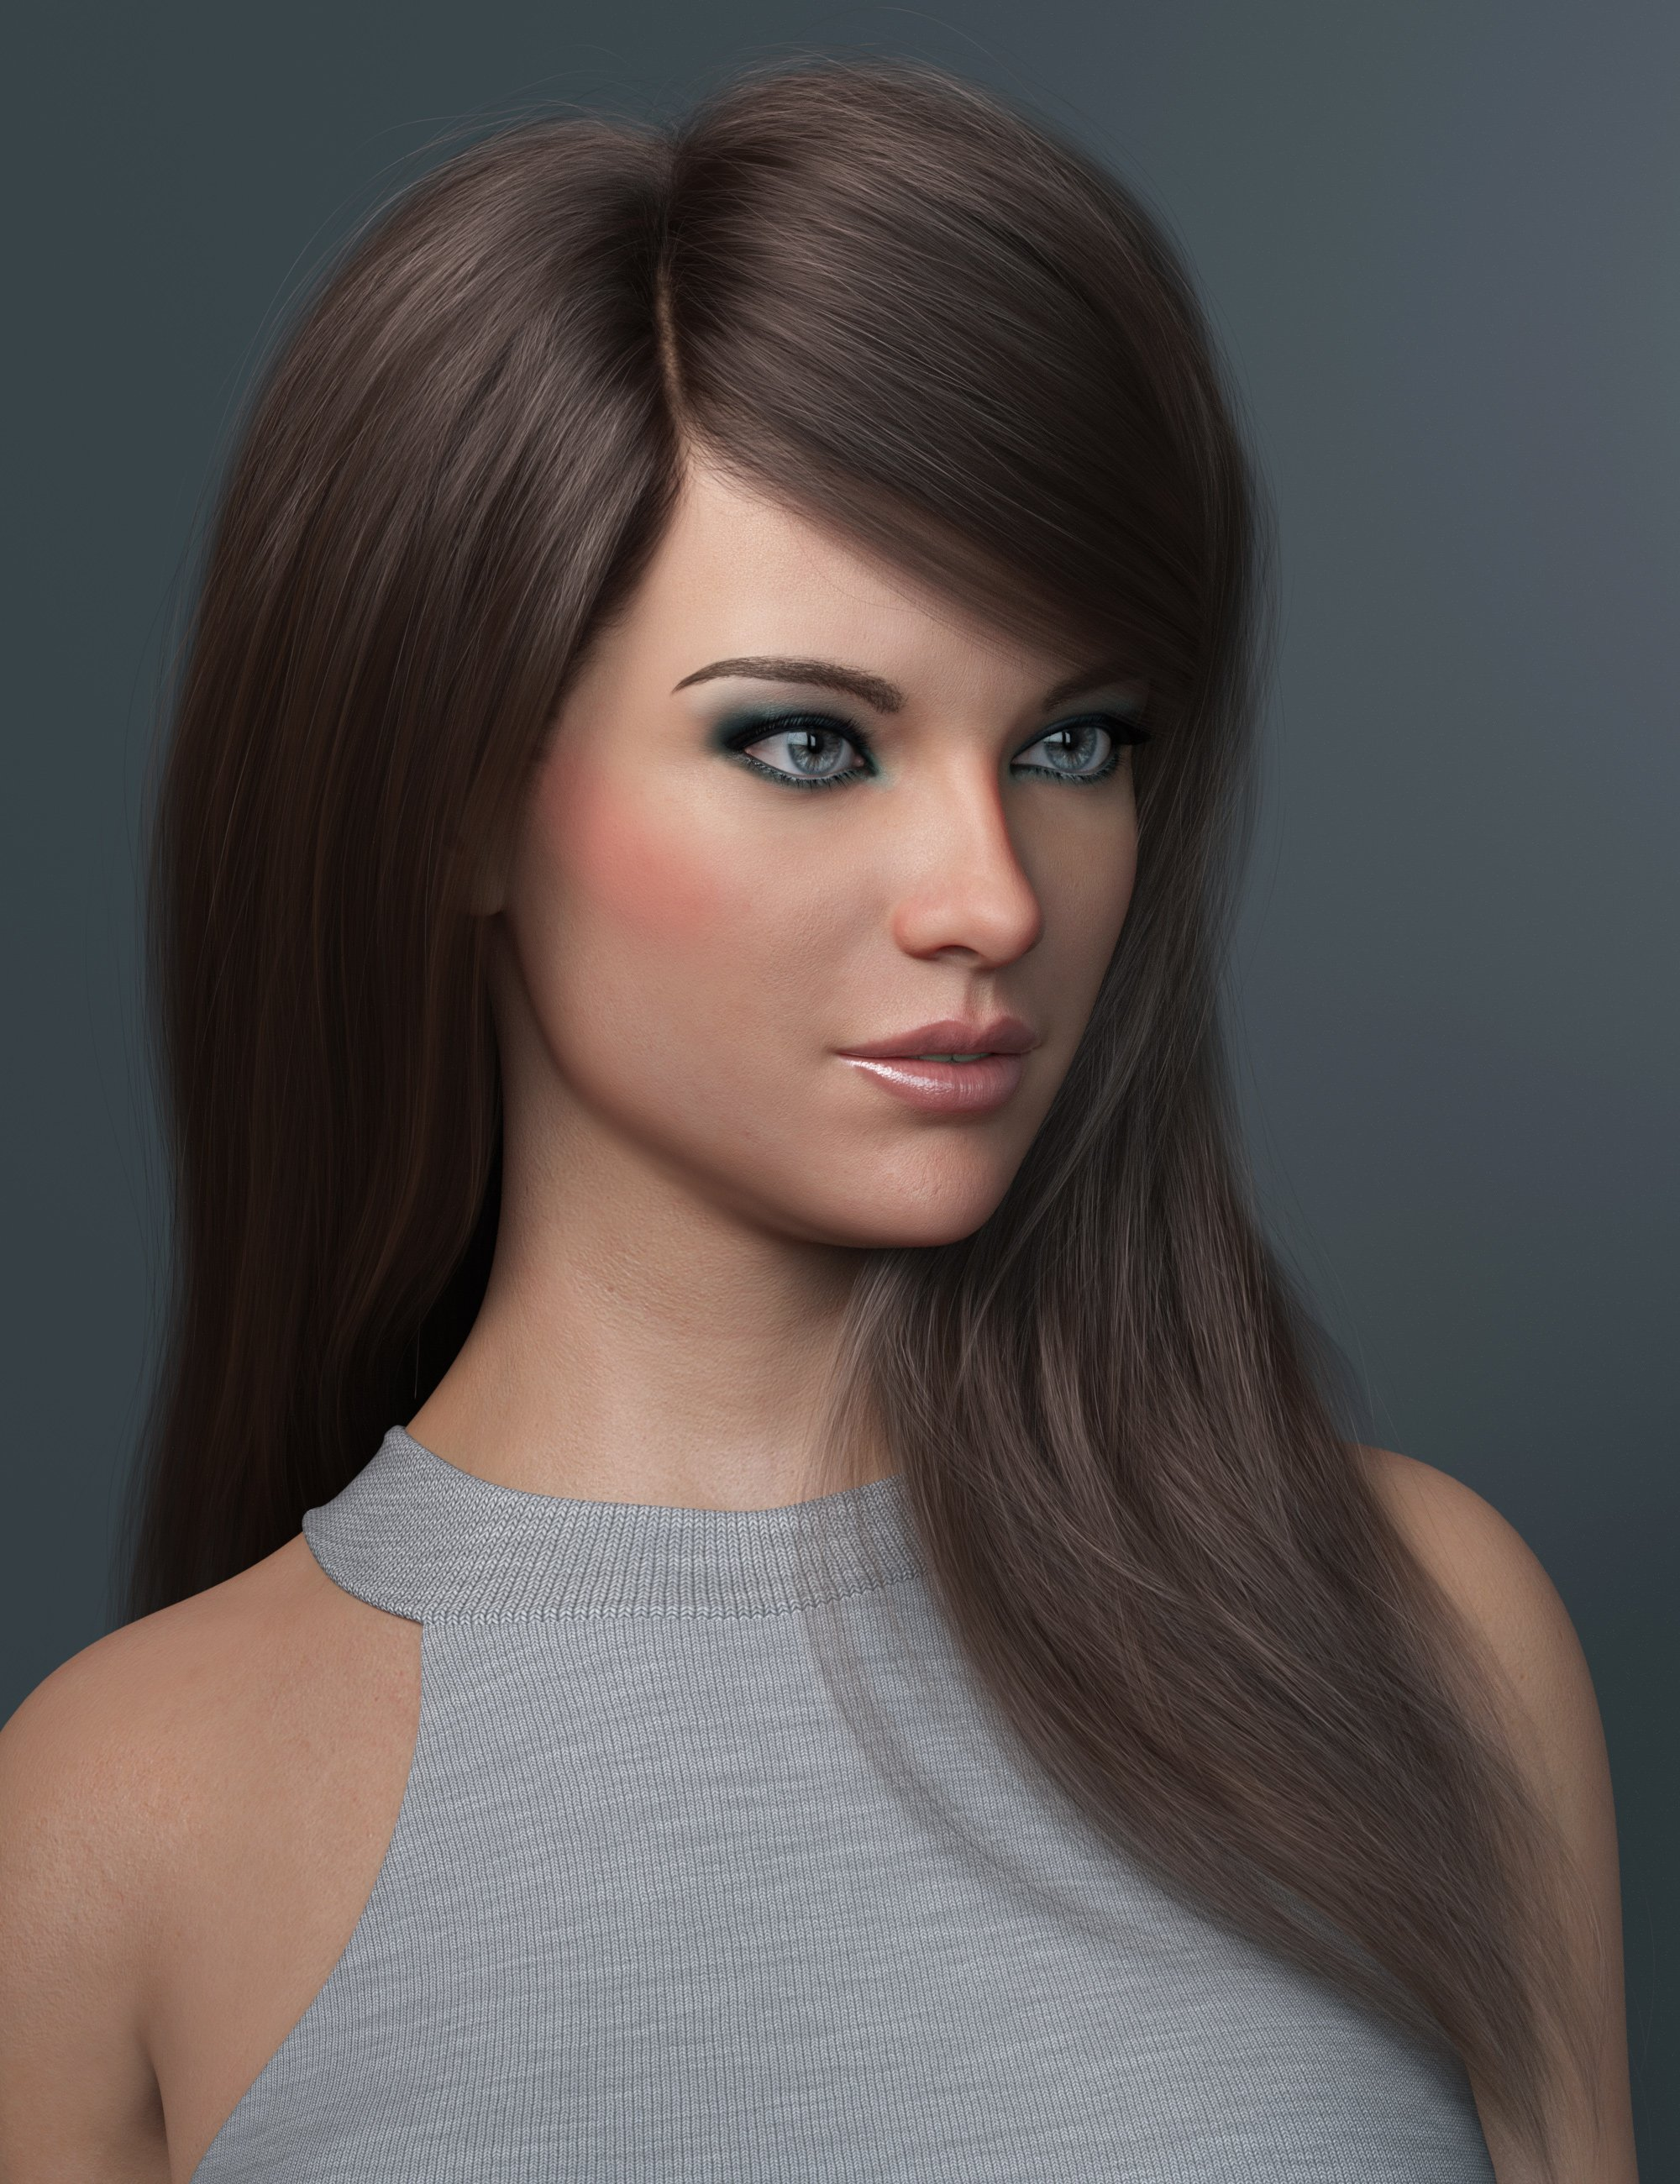 Swept Bangs Hair for Genesis 3 and 8 Females by: outoftouch, 3D Models by Daz 3D